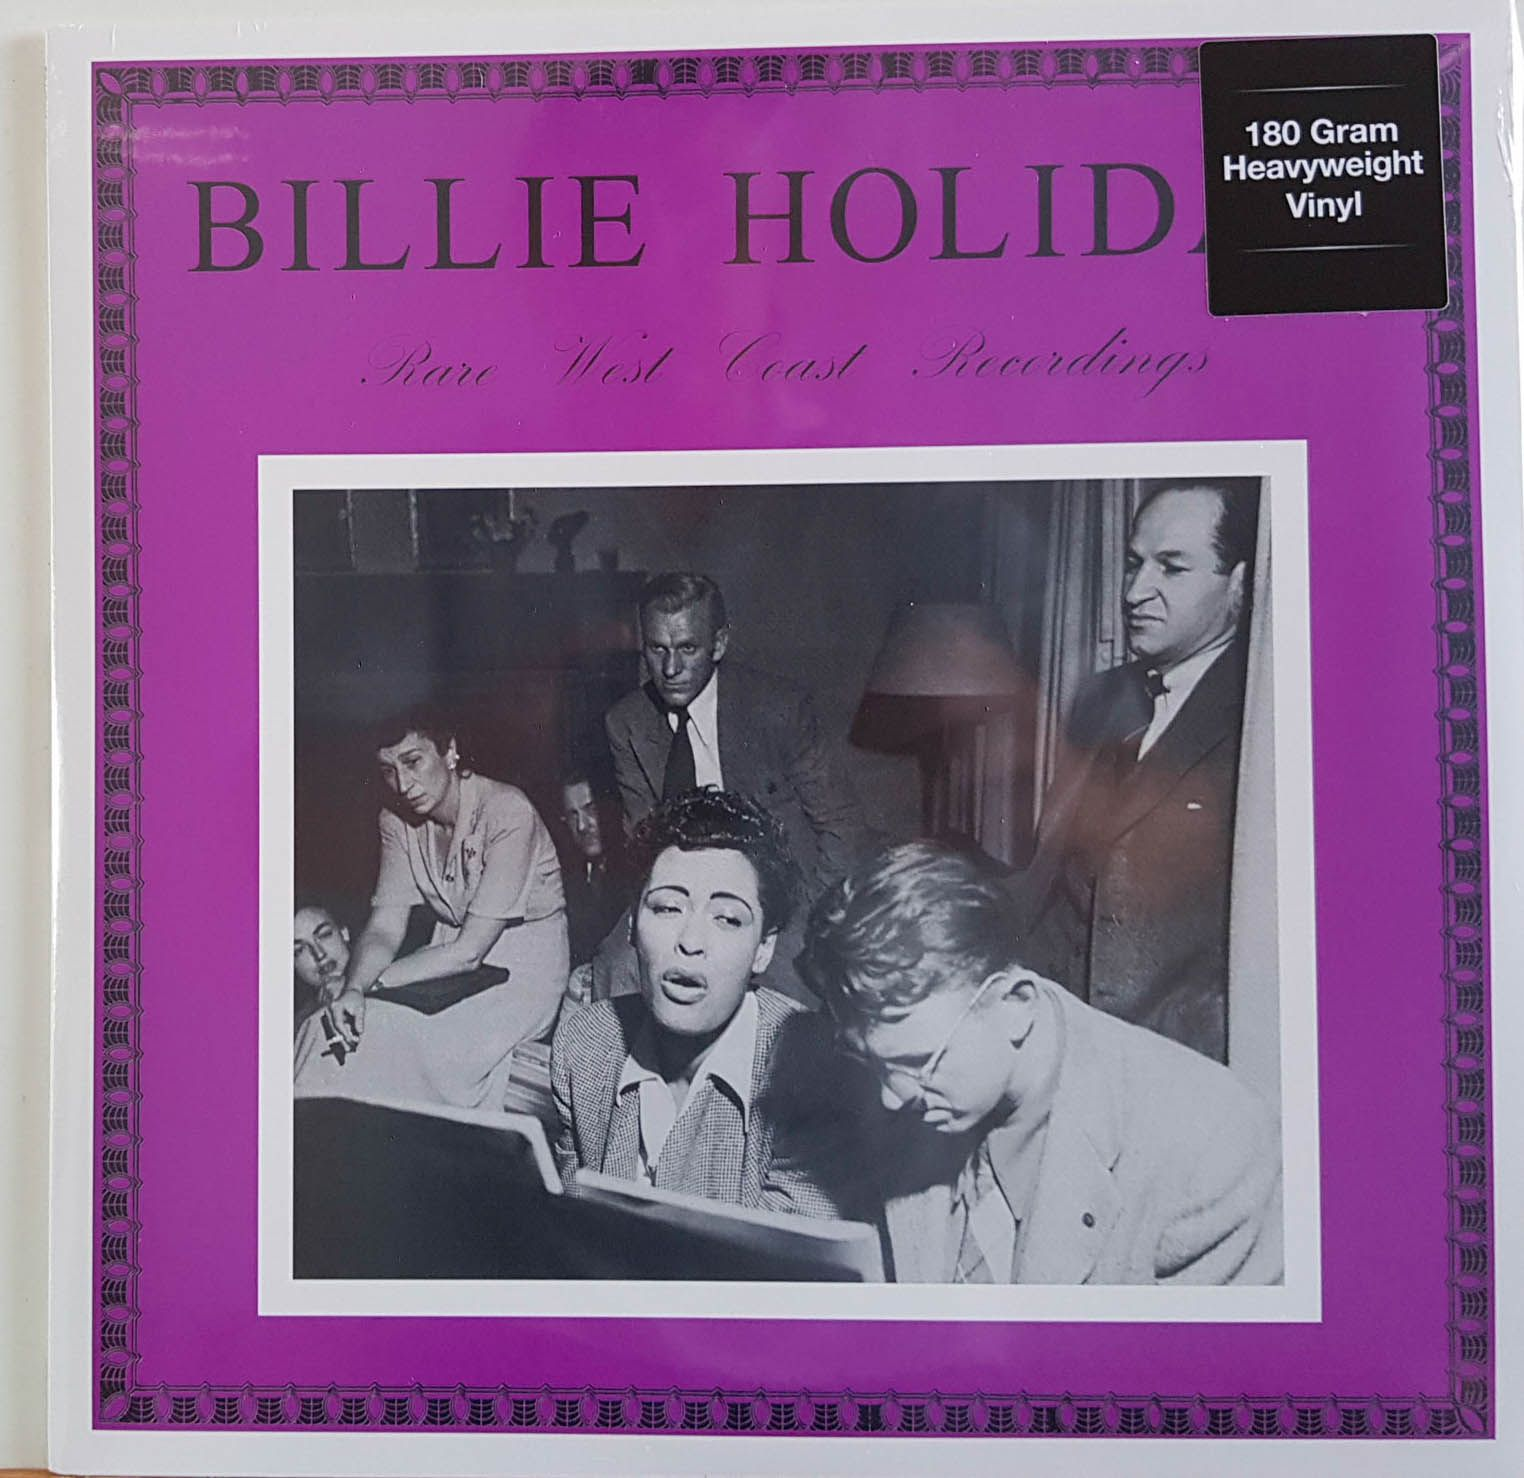 Lp Vinil Billie Holiday Rare West Coast Recordings